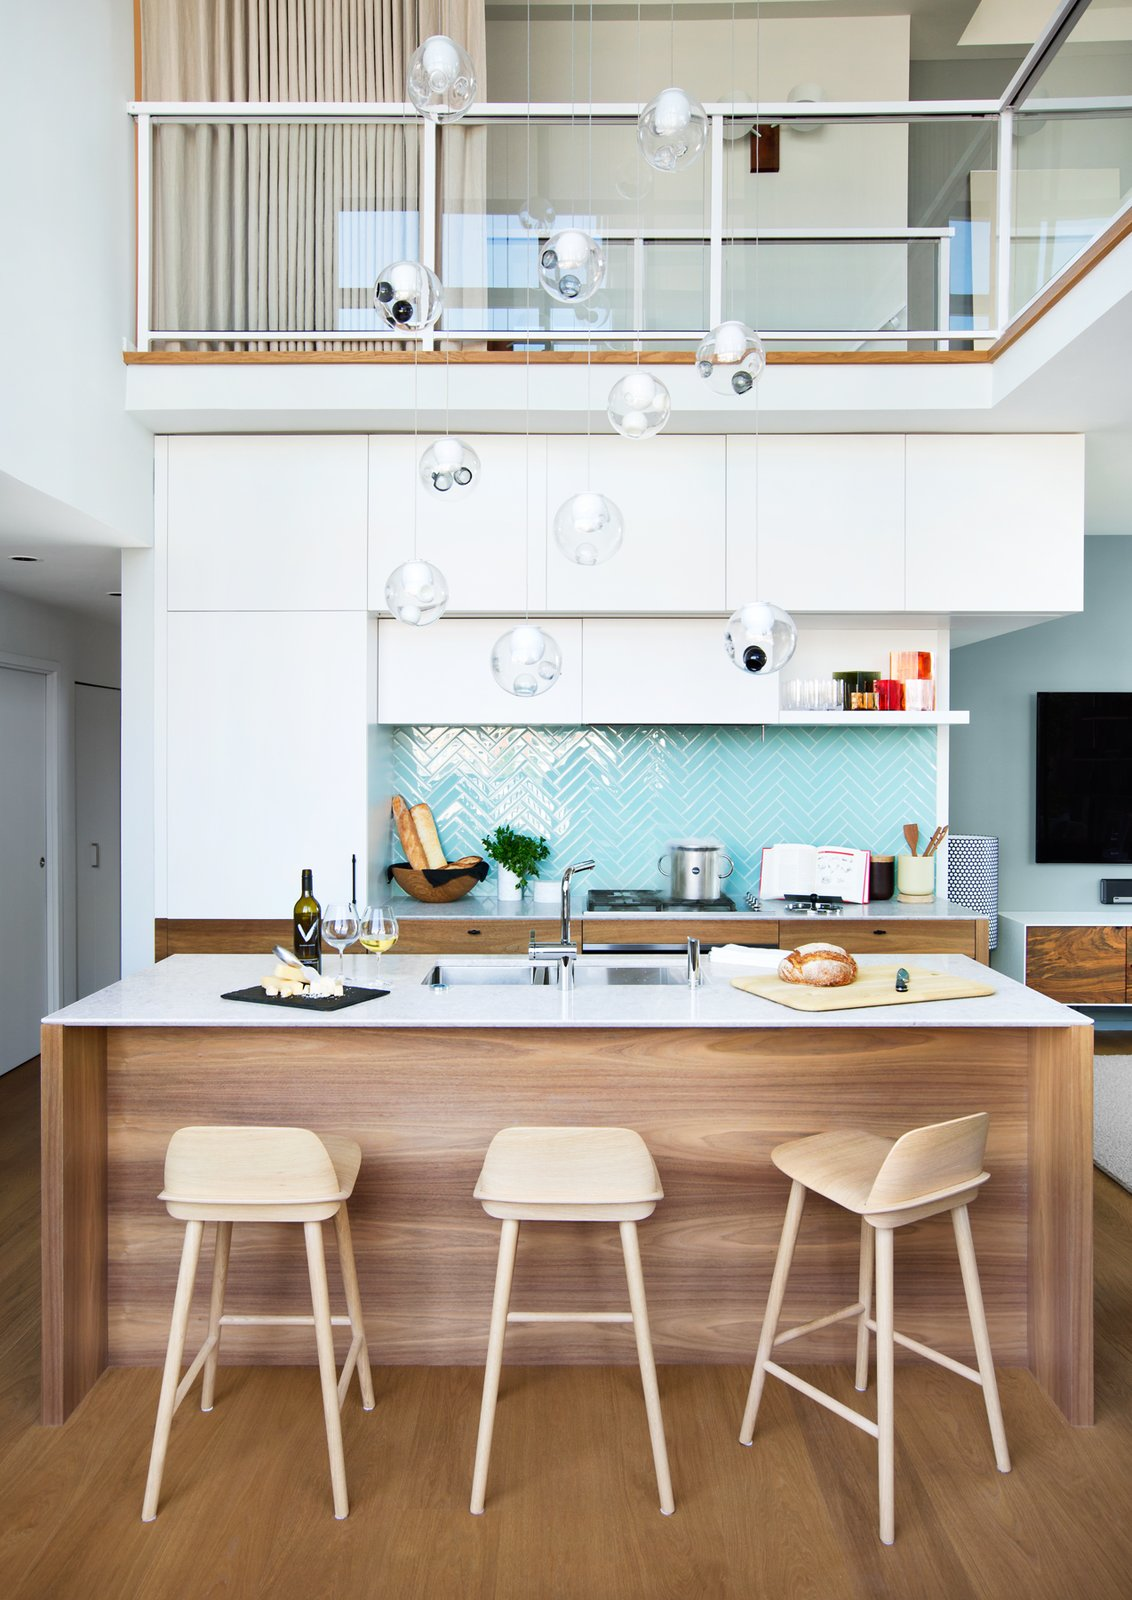 Kitchen, Wood, Refrigerator, Glass Tile, Wall Oven, Pendant, Undermount, Engineered Quartz, Medium Hardwood, Cooktops, Range Hood, and White Nerd Stools by Muuto  Best Kitchen Range Hood Wood Refrigerator Pendant Cooktops White Photos from Beatty Street Loft